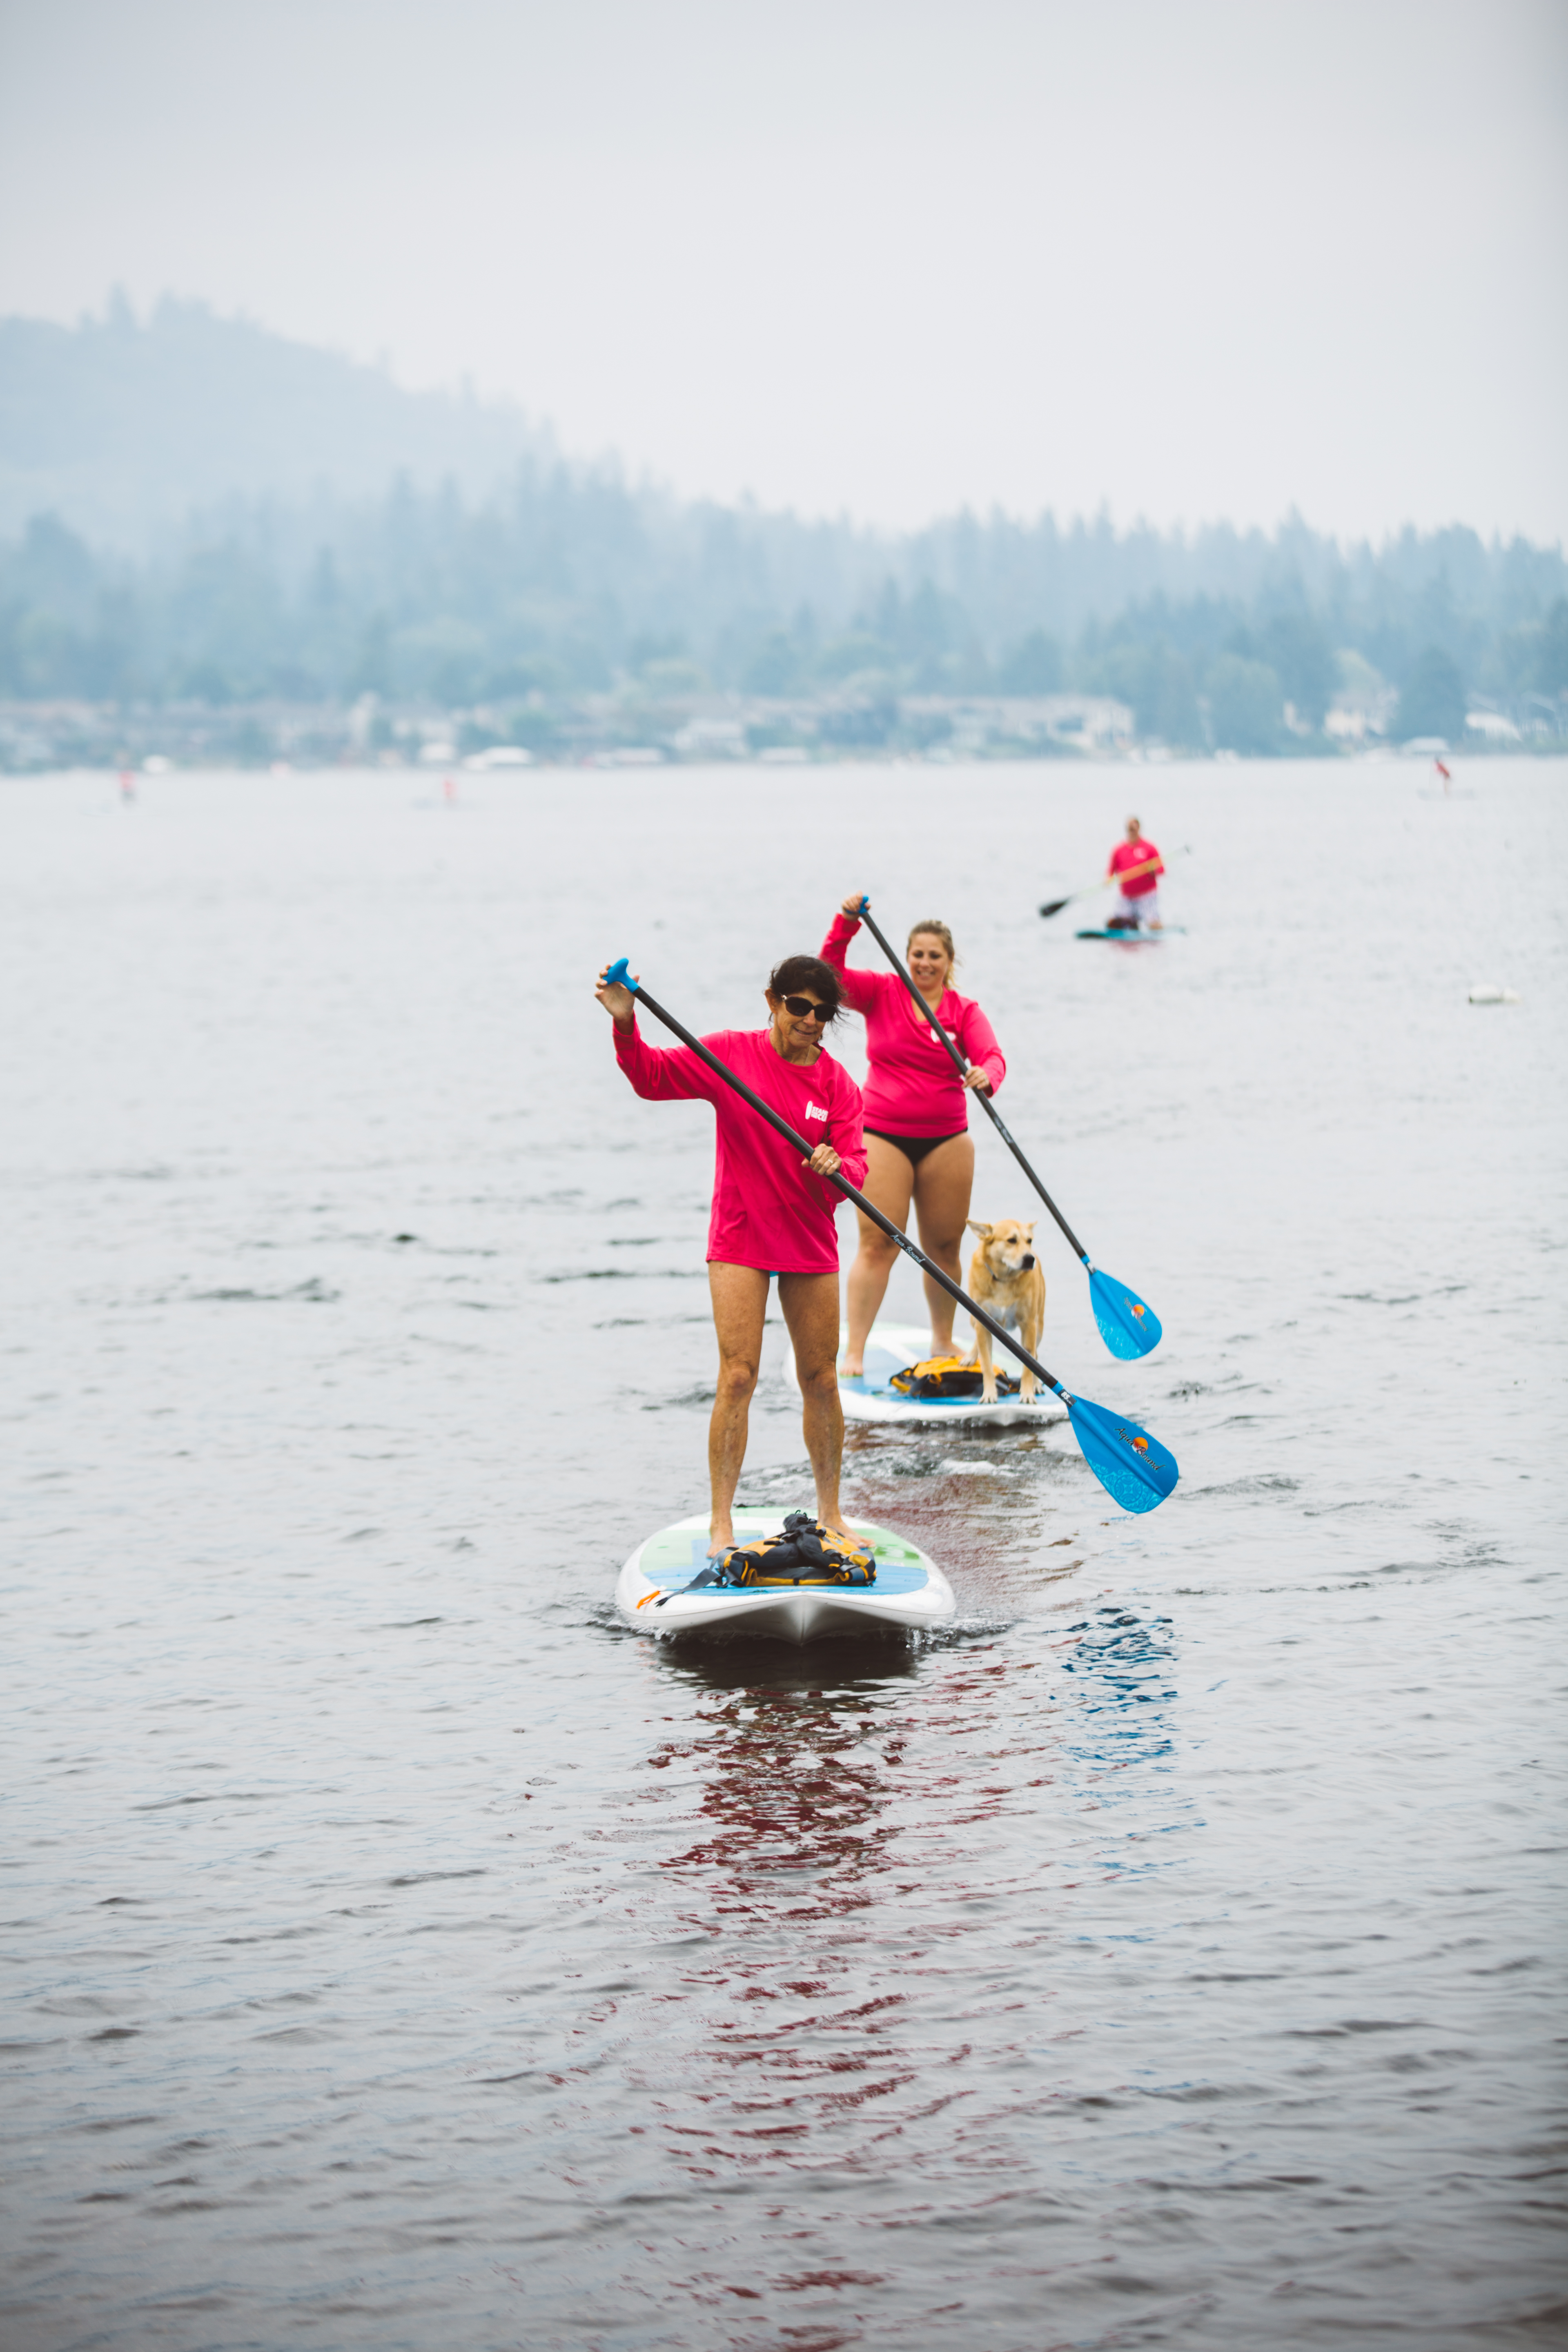 It was an amazing day on Lake Sammamish of family, fun, food, friend, music and races! The second annual Stand Up for the Cure, brought expert AND first-time paddleboarders to the lake to raise money for{ }early breast cancer detection, treatment and education. Proceeds stay right here and benefit Susan G. Komen Puget Sound. A big thanks to Trapper Sushi, Essential Baking Company, Ivar's, Top Pot Donuts, Georgetown Brewing and Talking Rain for being a part of this year's event! (Image: Ryan McBoyle / Seattle Refined)